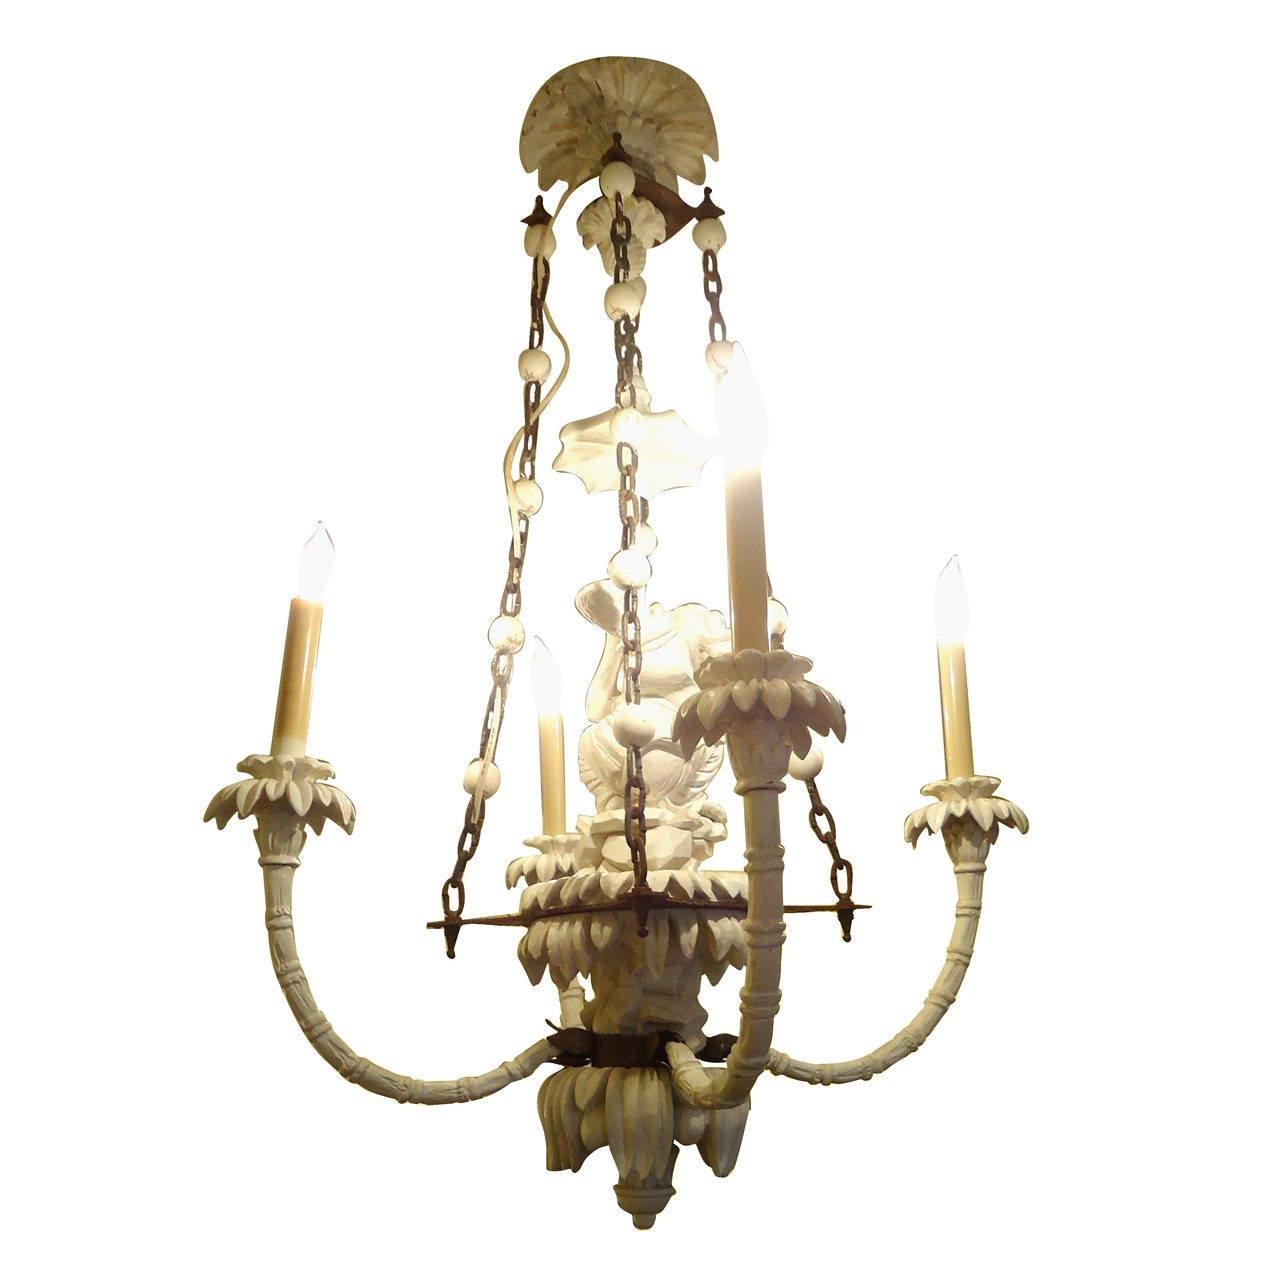 Super Chic Carved Wood Chinoiserie Style Monkey Chandelier At 1stdibs Regarding Chinoiserie Chandeliers (Image 23 of 25)